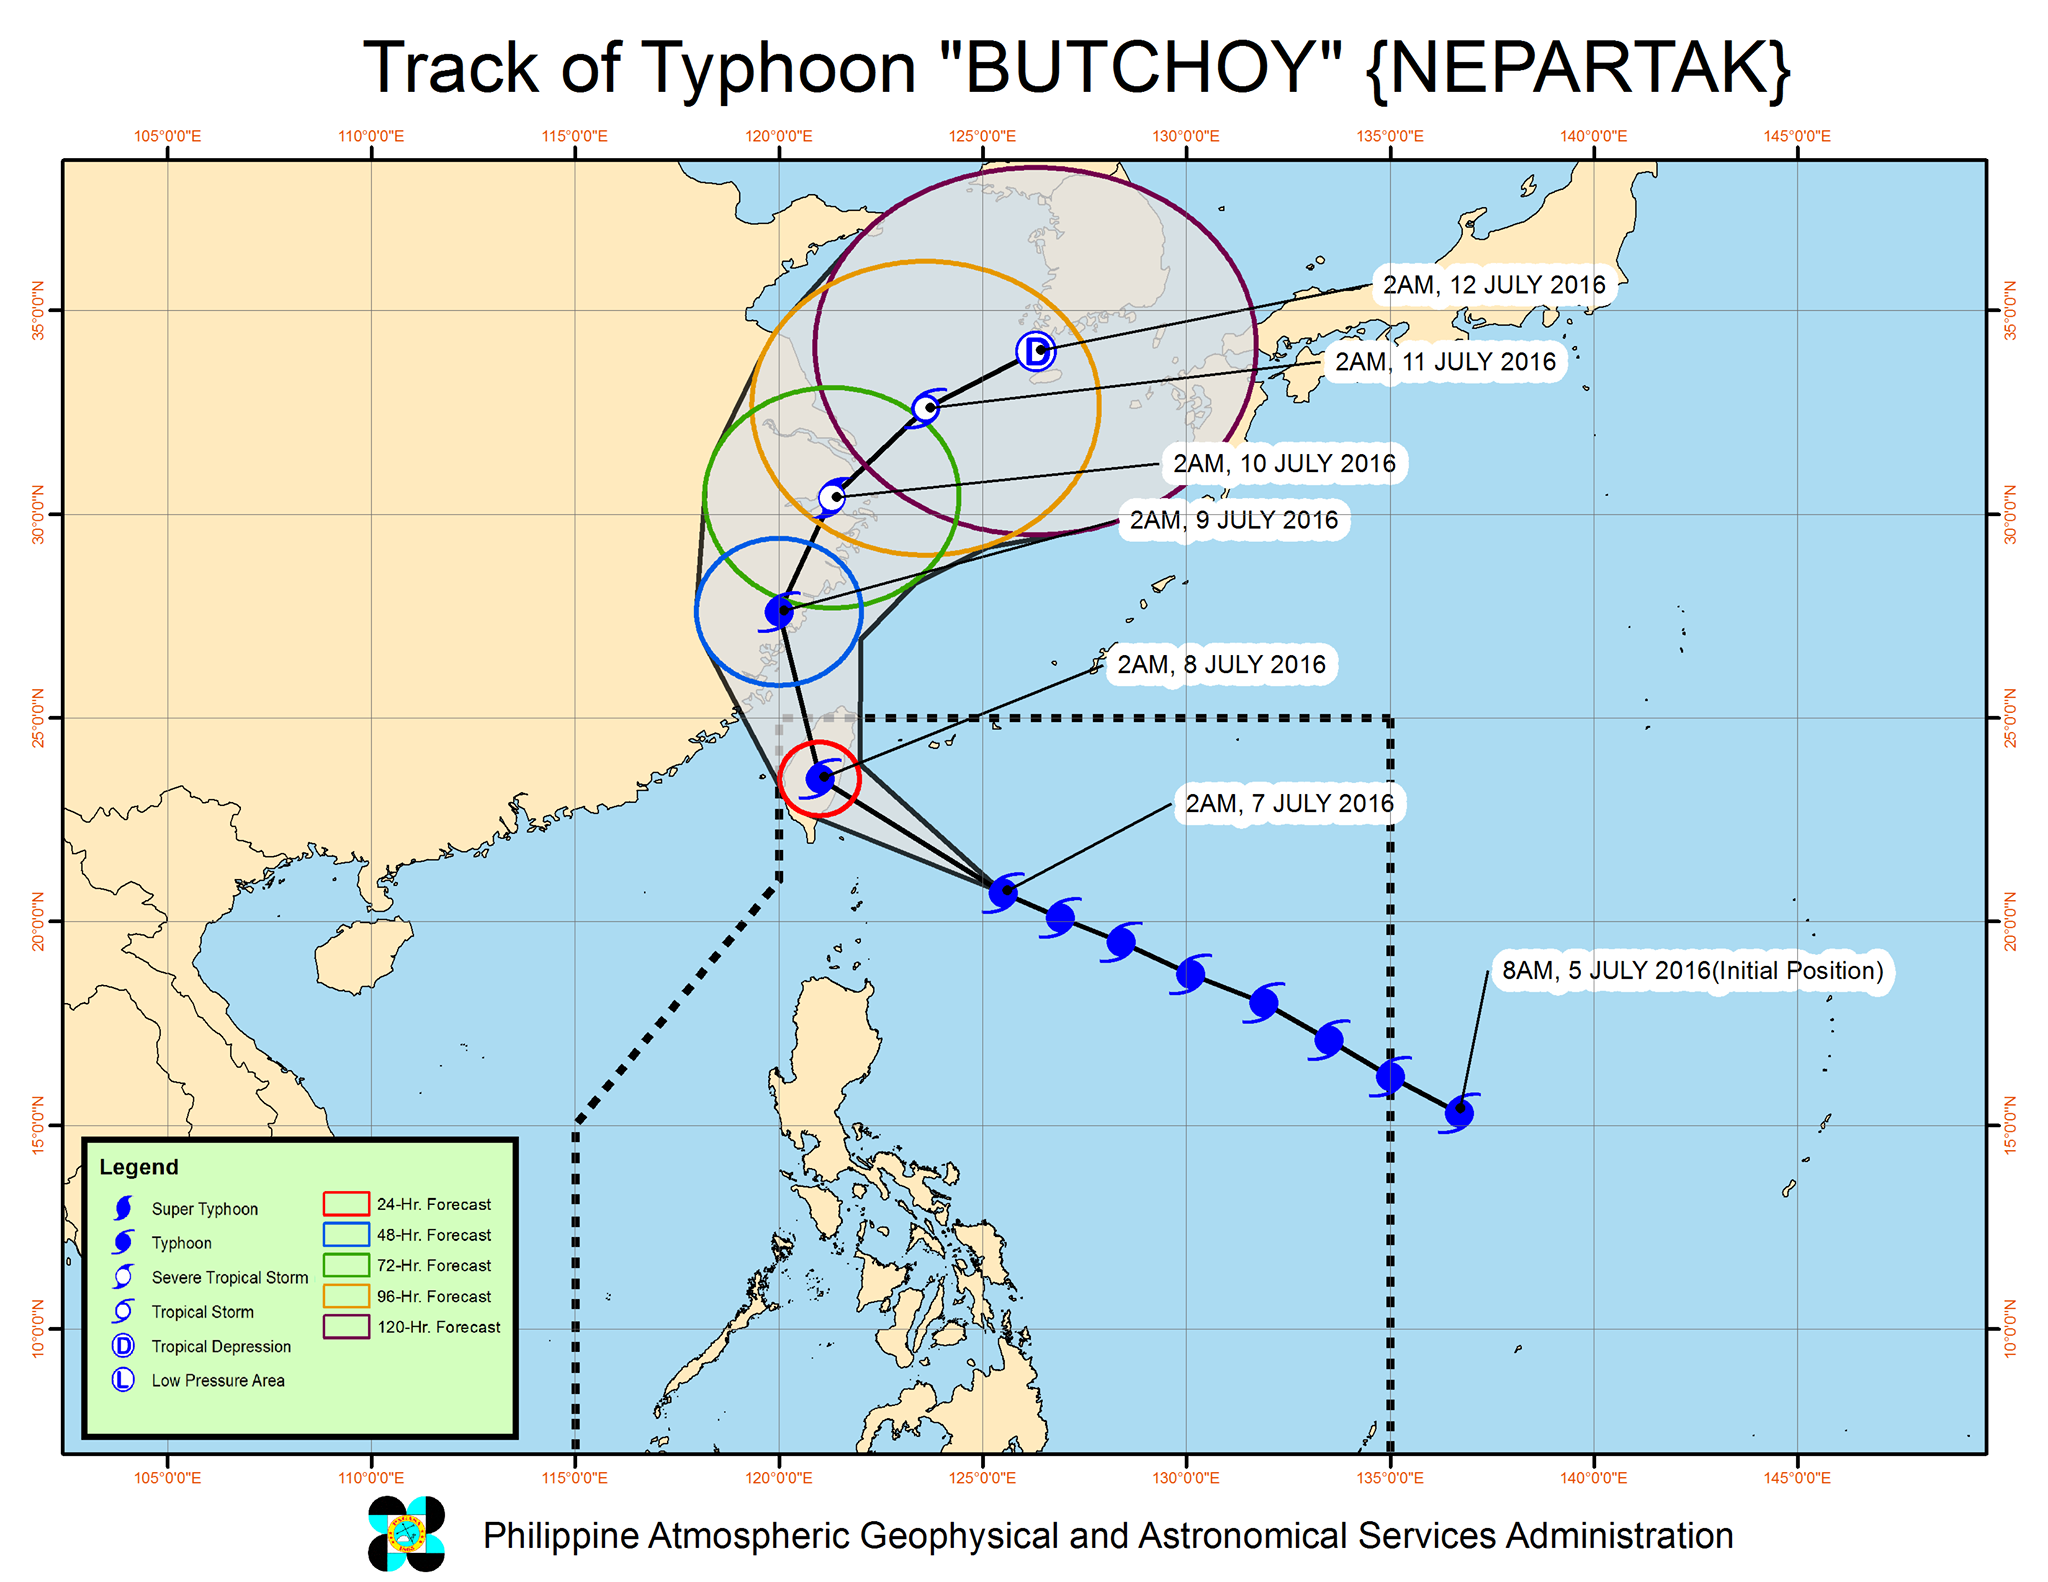 Typhoon Butchoy Philippines To Taiwan July 7 2016